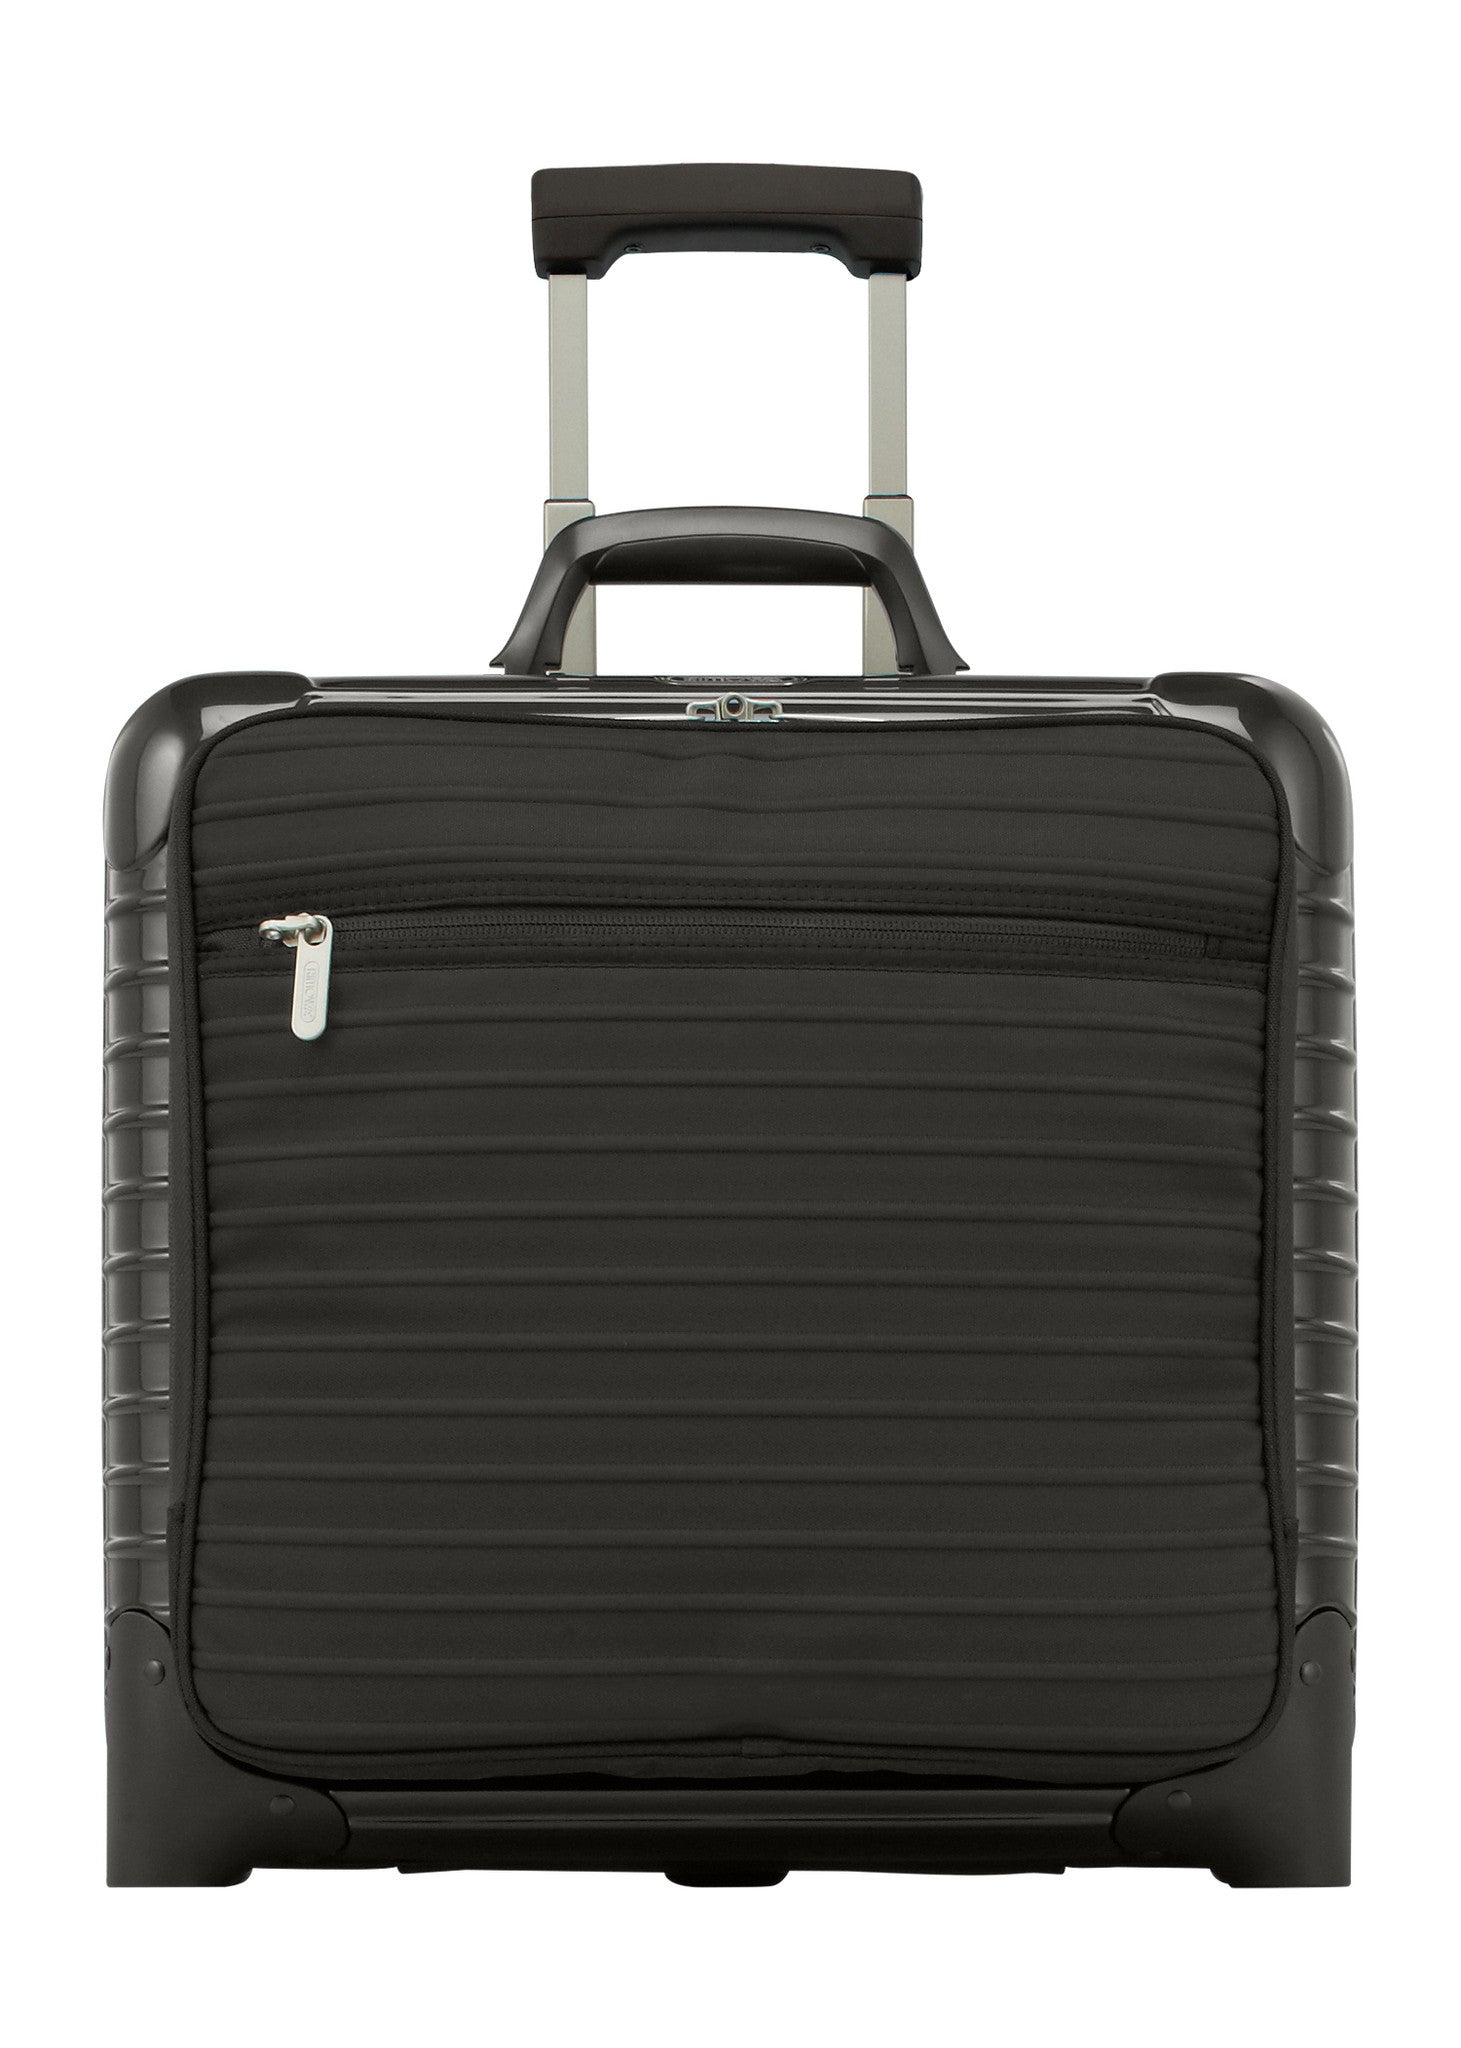 Rimowa Salsa Deluxe Hybrid Business Trolley (SM) - Granite Brown | MEGO